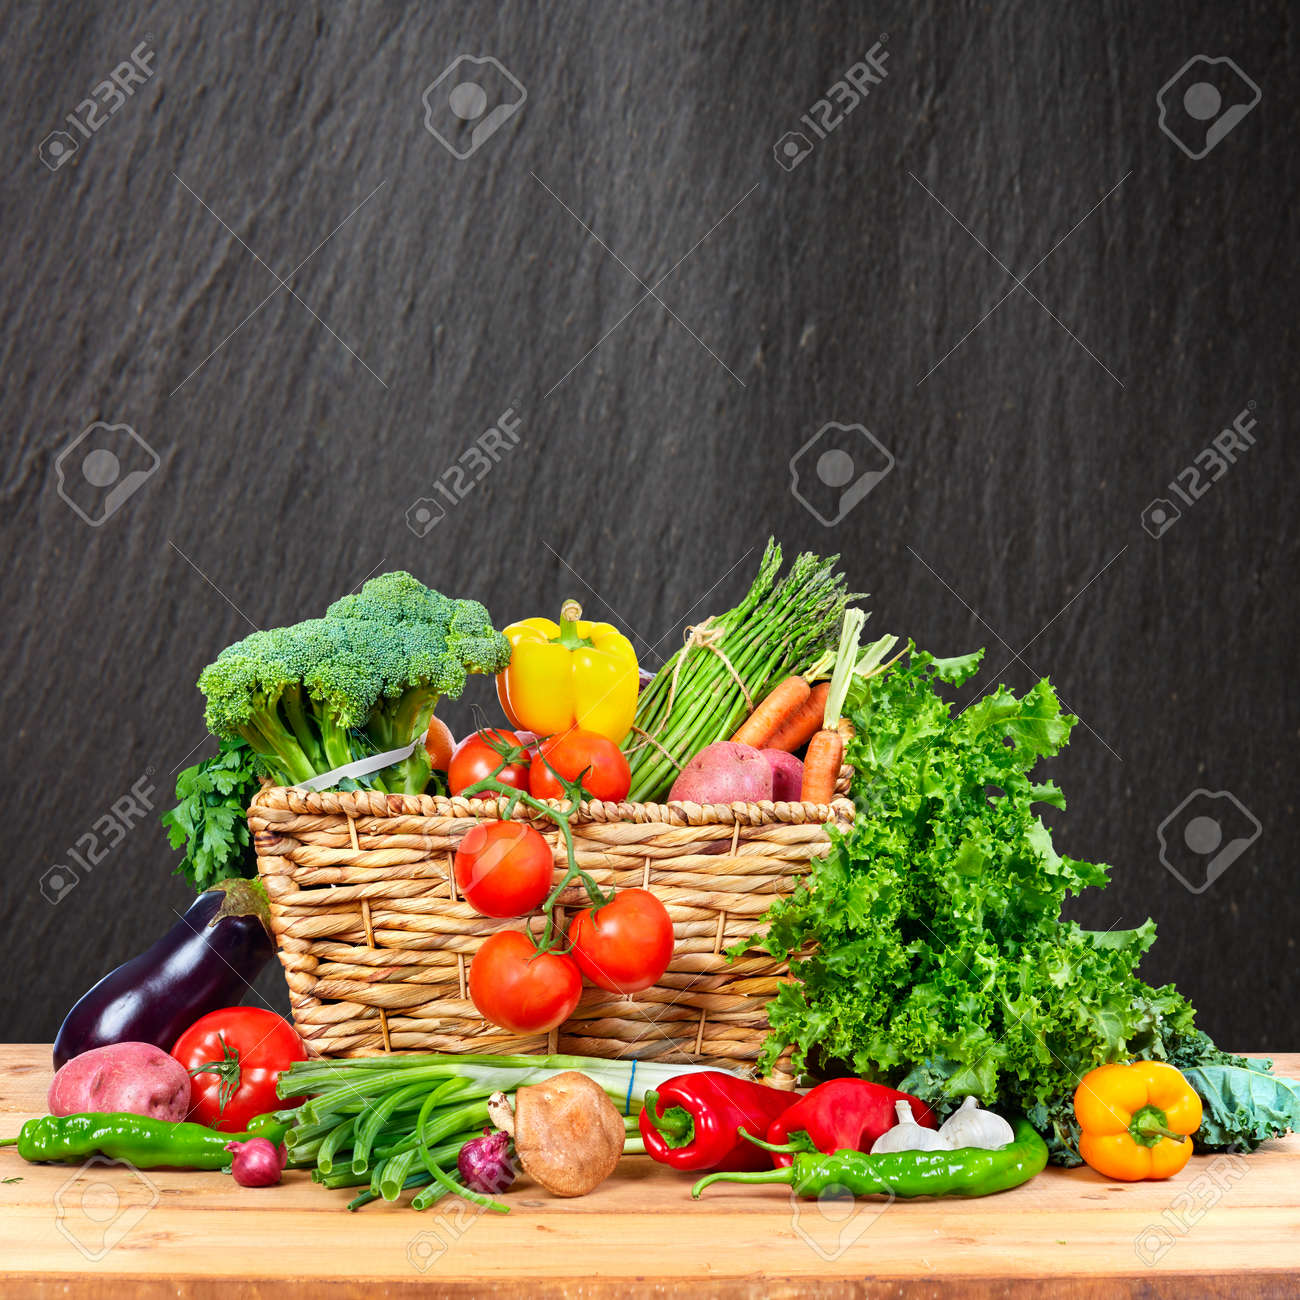 Organic vegetables variety on the table in kitchen Stock Photo - 65806354